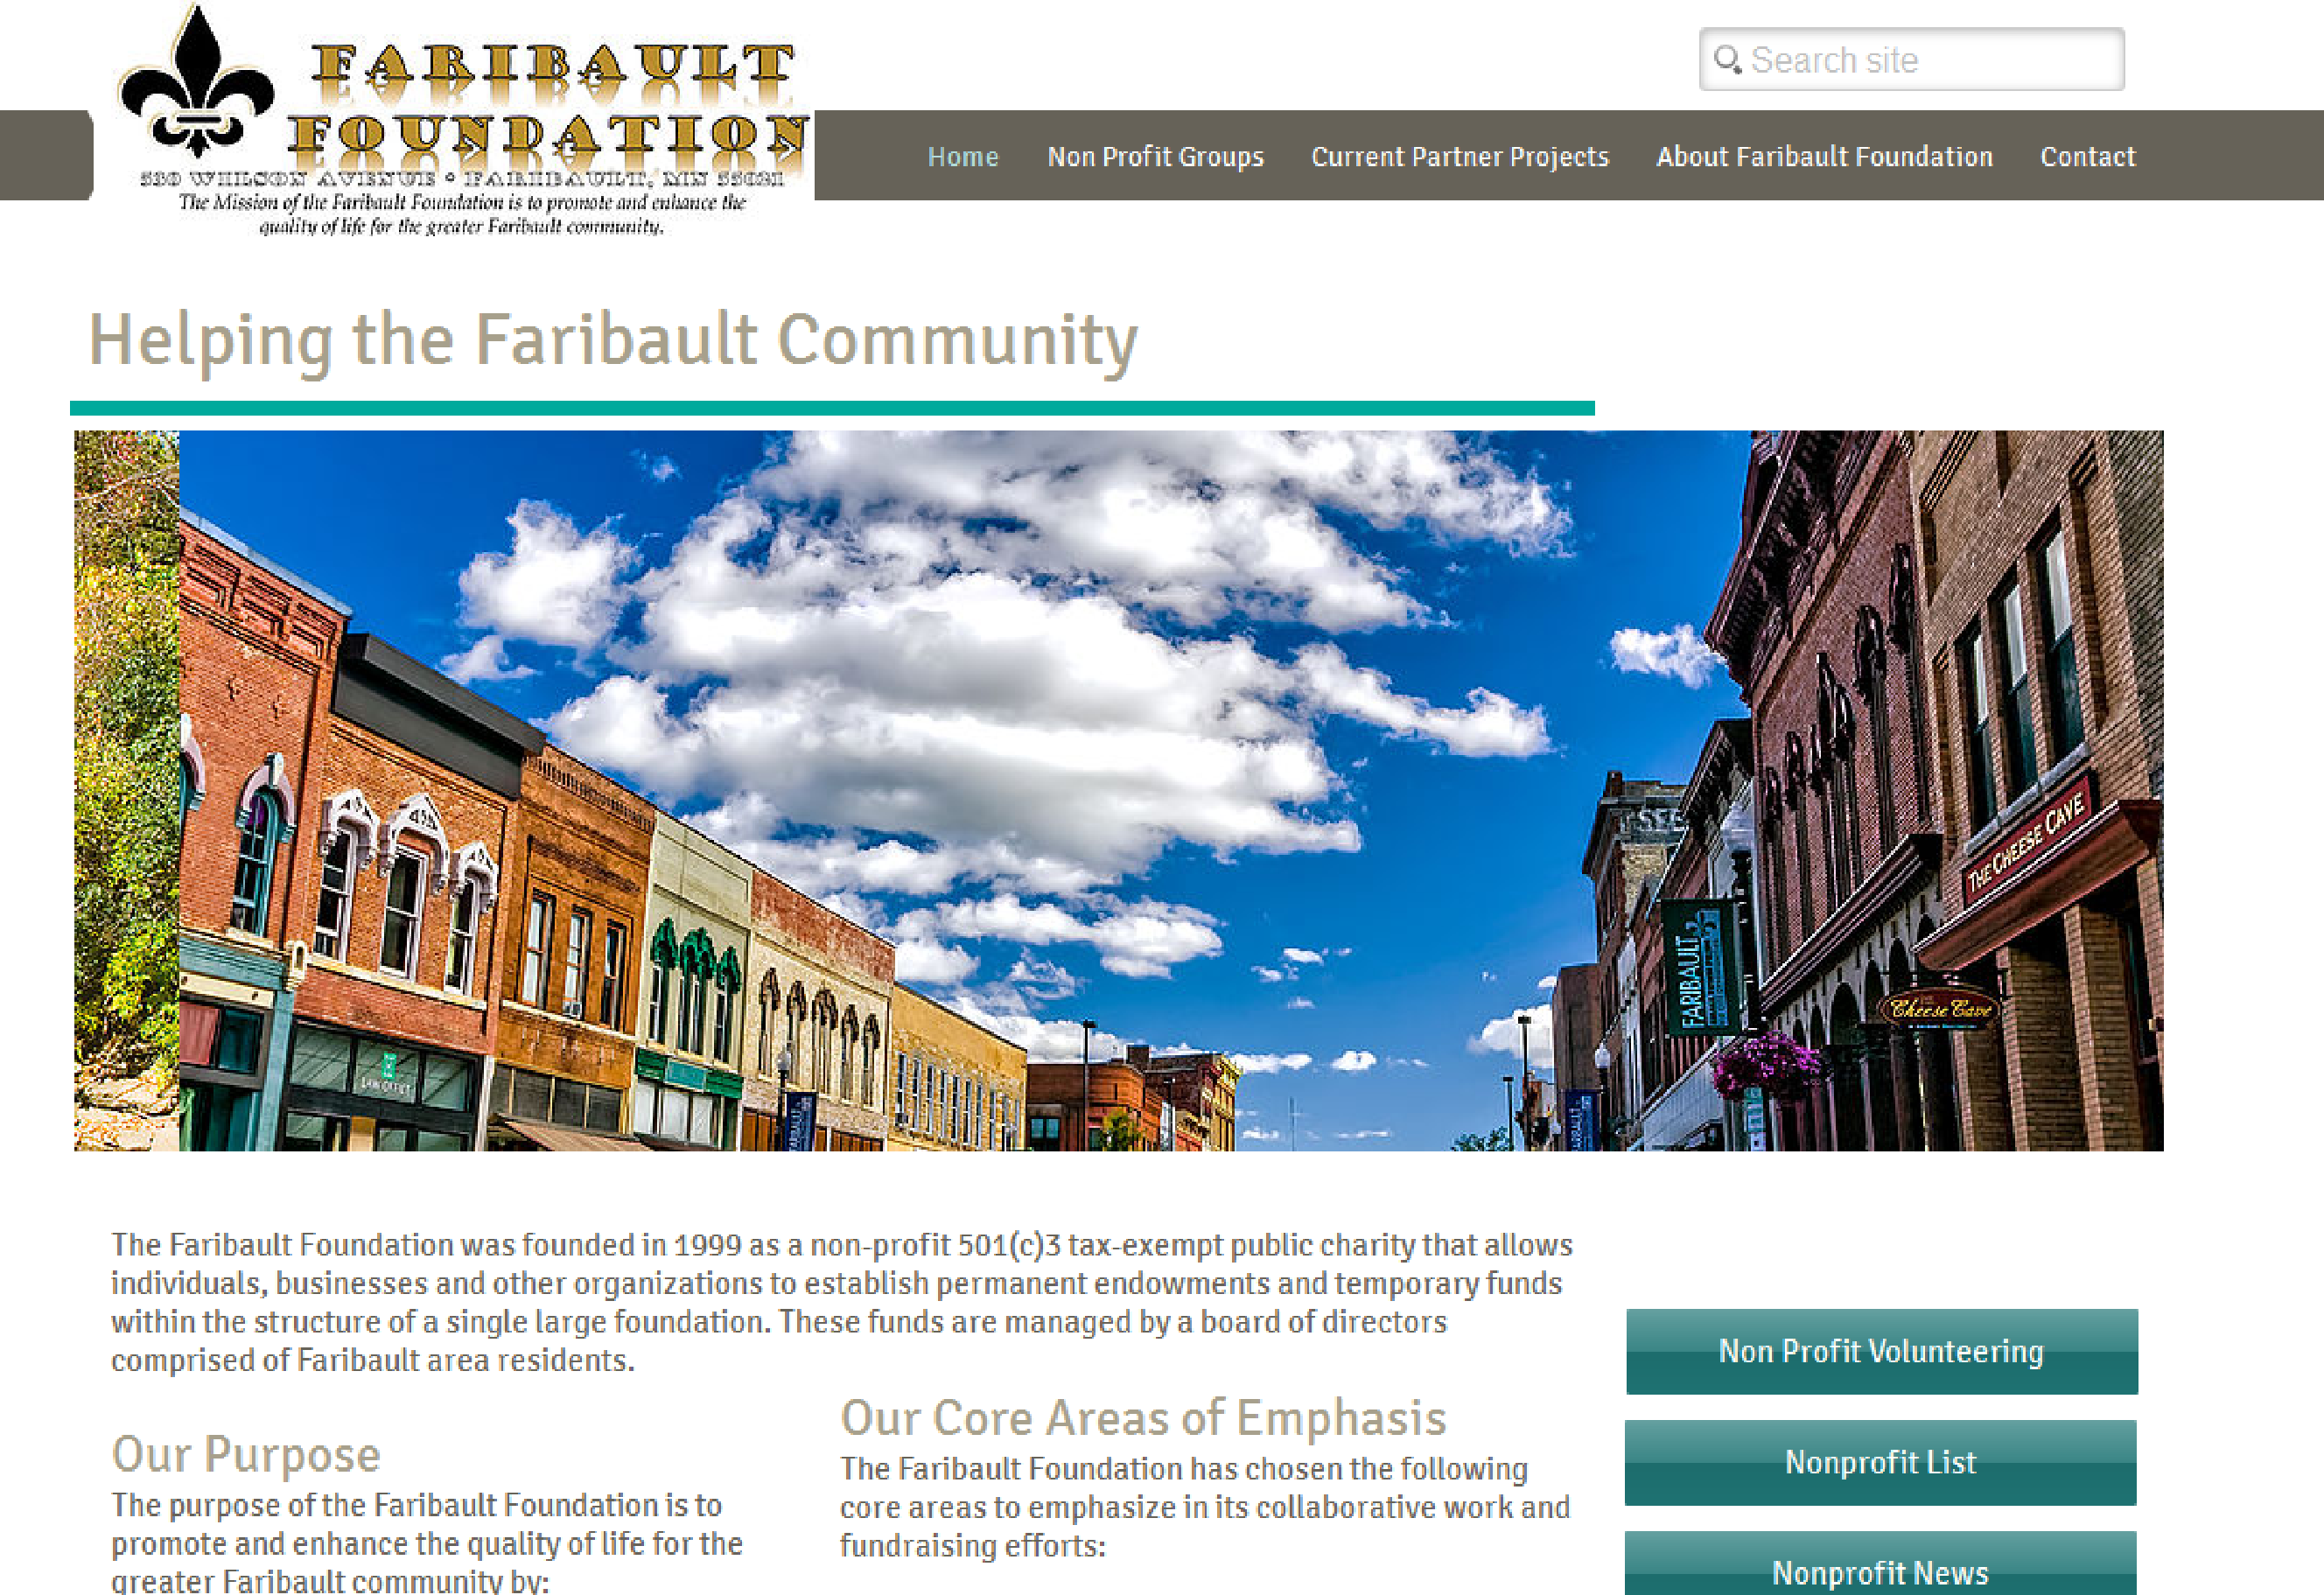 Faribault Foundation